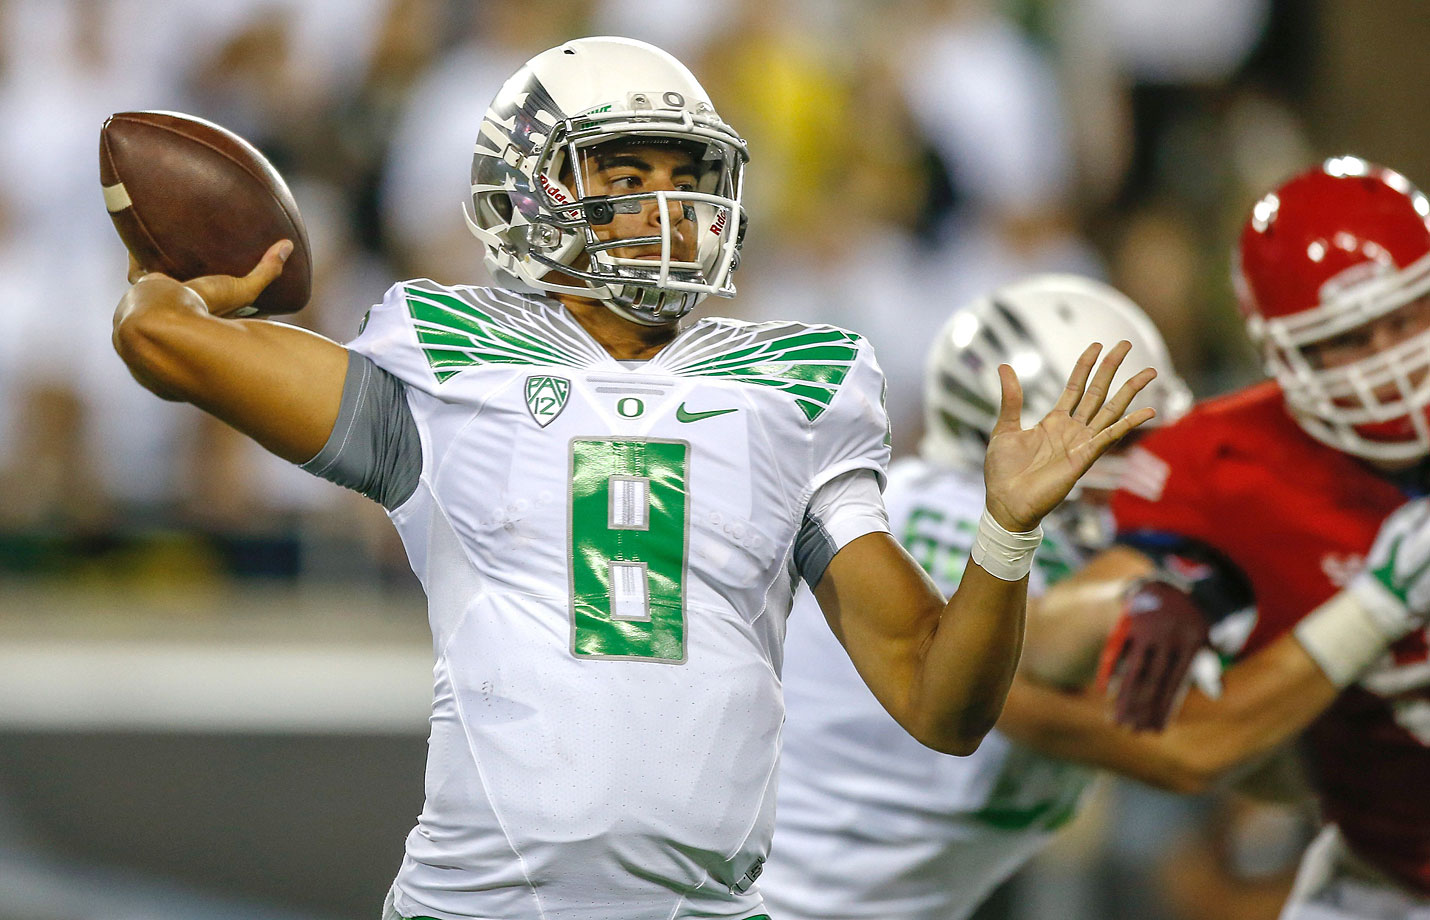 Oregon cruised in its season opener, getting four touchdowns from Marcus Mariota and dropping 41 points in the first half.